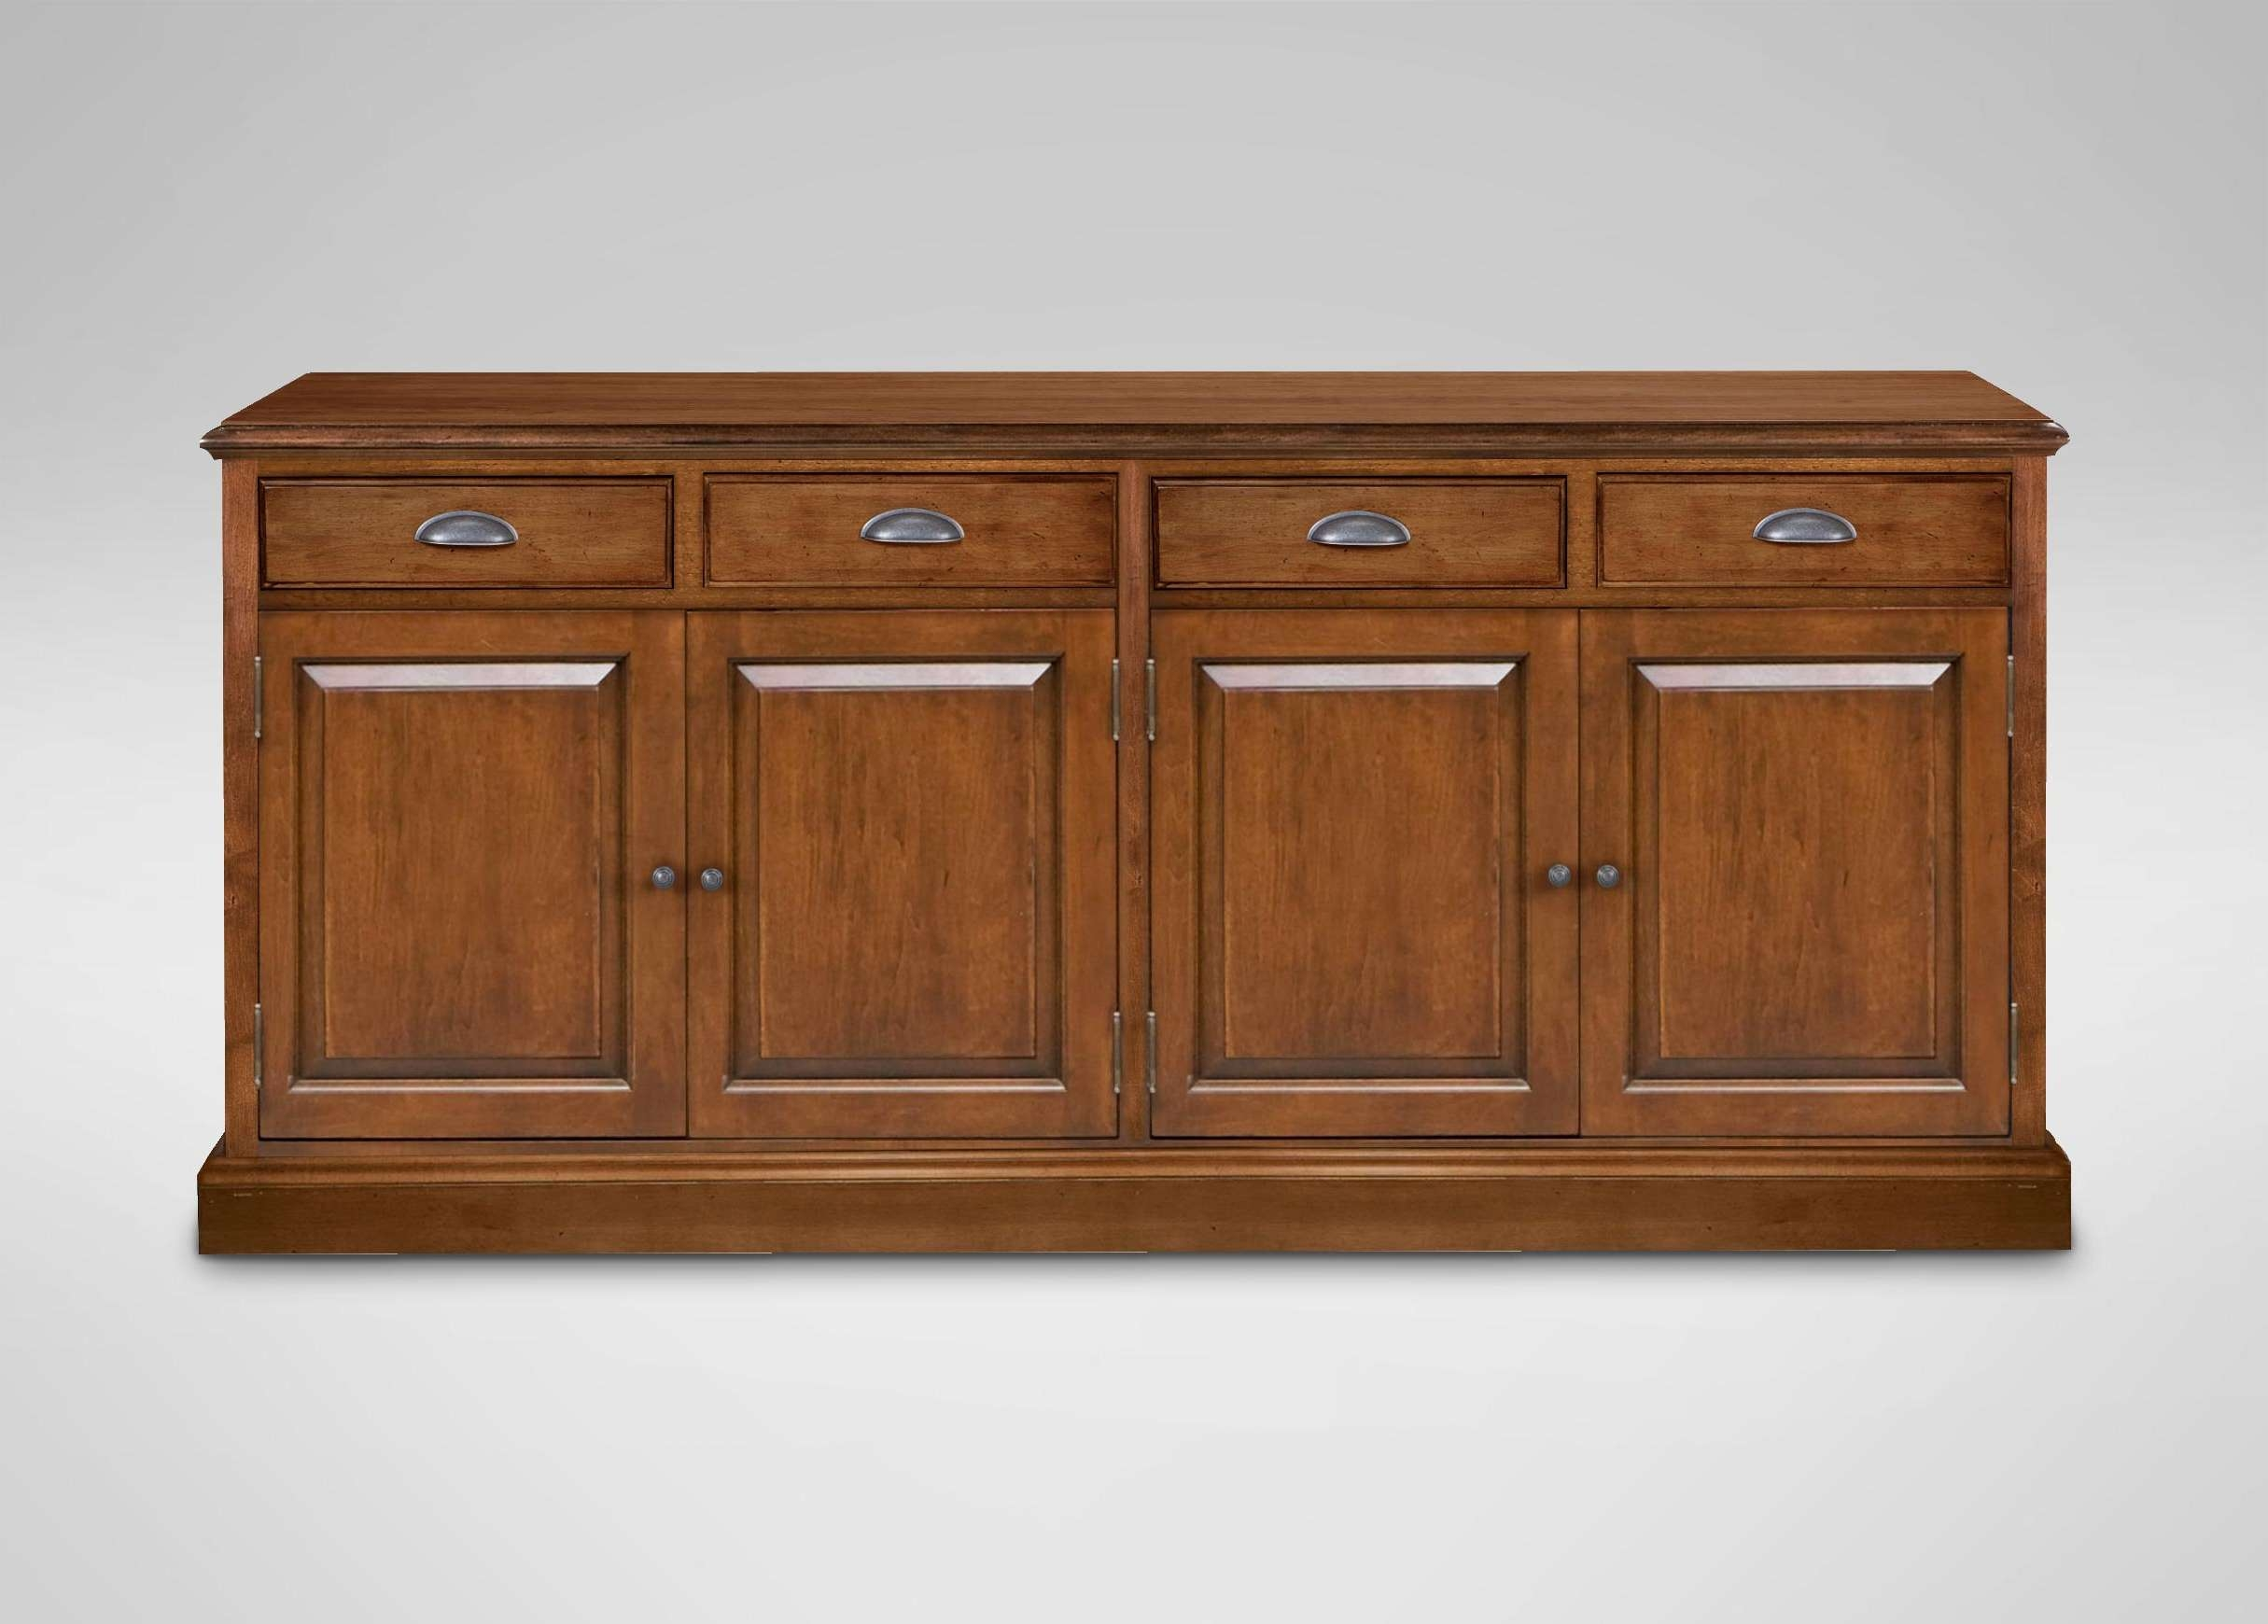 Shop Buffet Storage, Sideboards & Servers | Ethan Allen In Black Sideboards Cabinets (View 20 of 20)